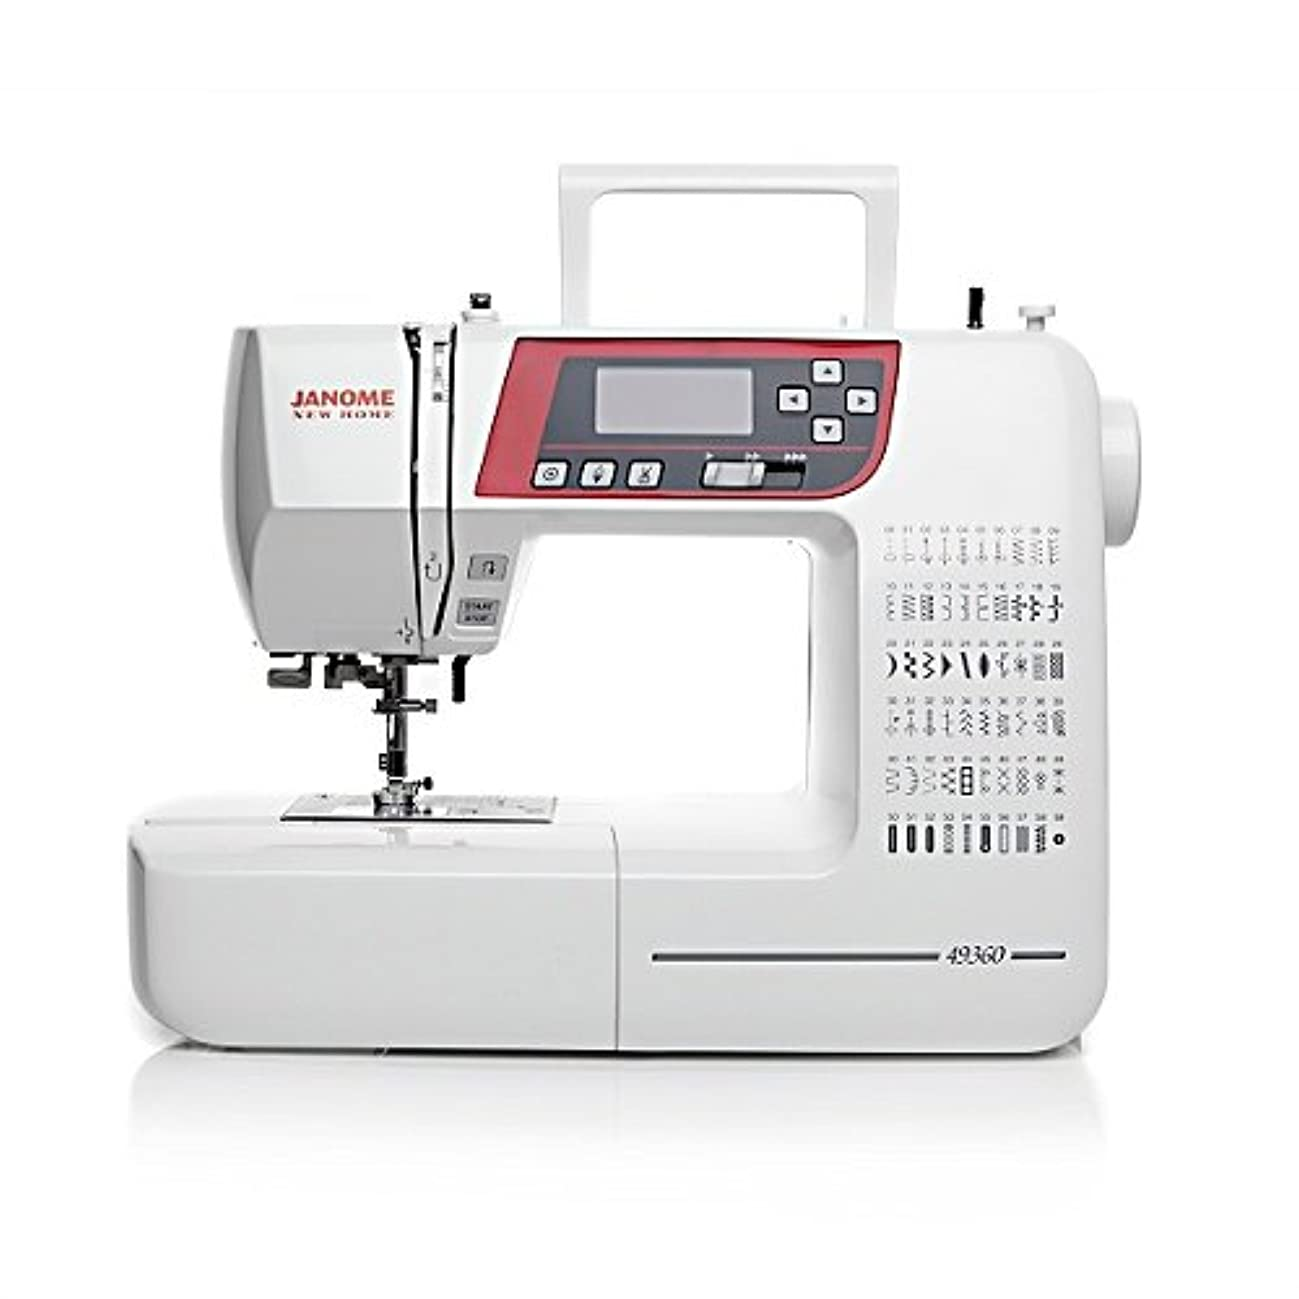 Janome 49360 Computerized Sewing Machine with Thread Cutter